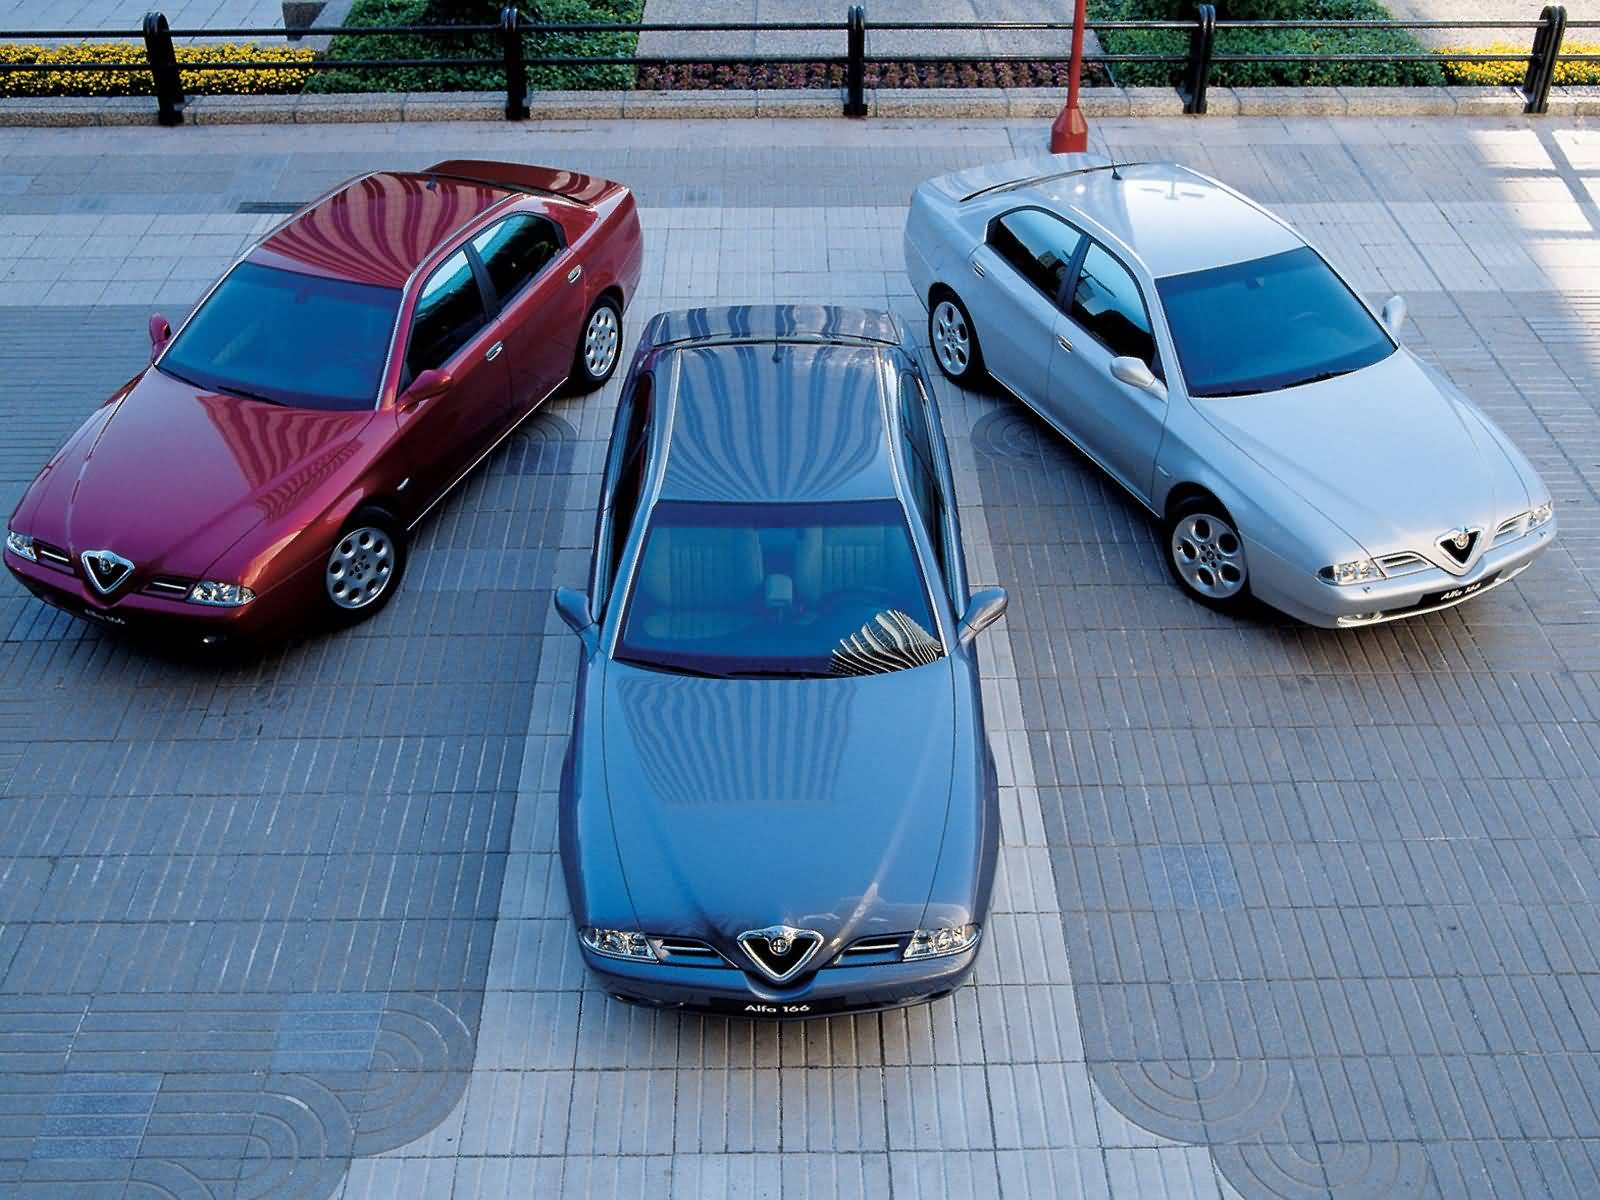 Beautiful three Alfa Romeo 166 Car